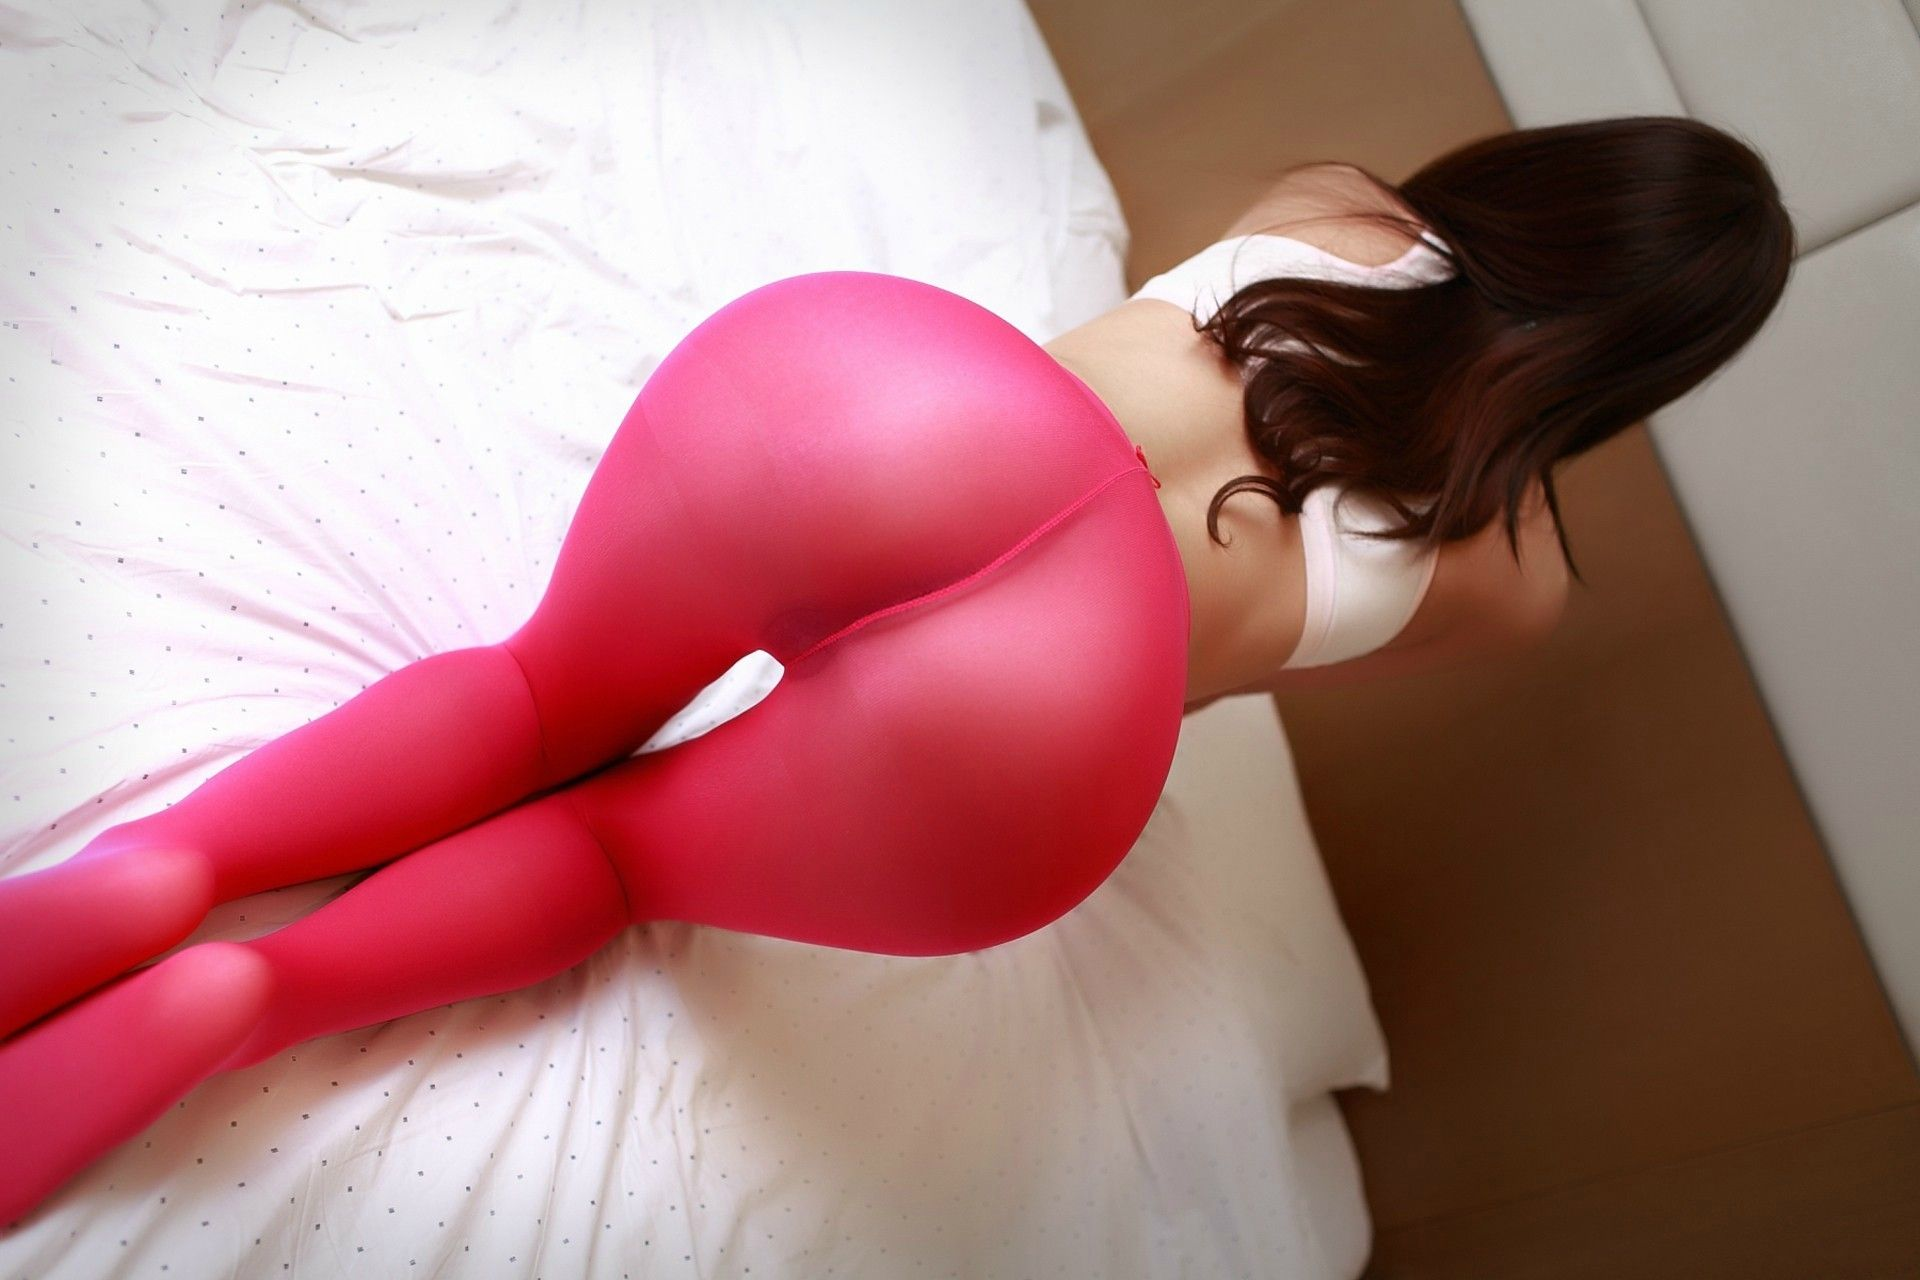 perfect ass with pink leggings, sexy photos,